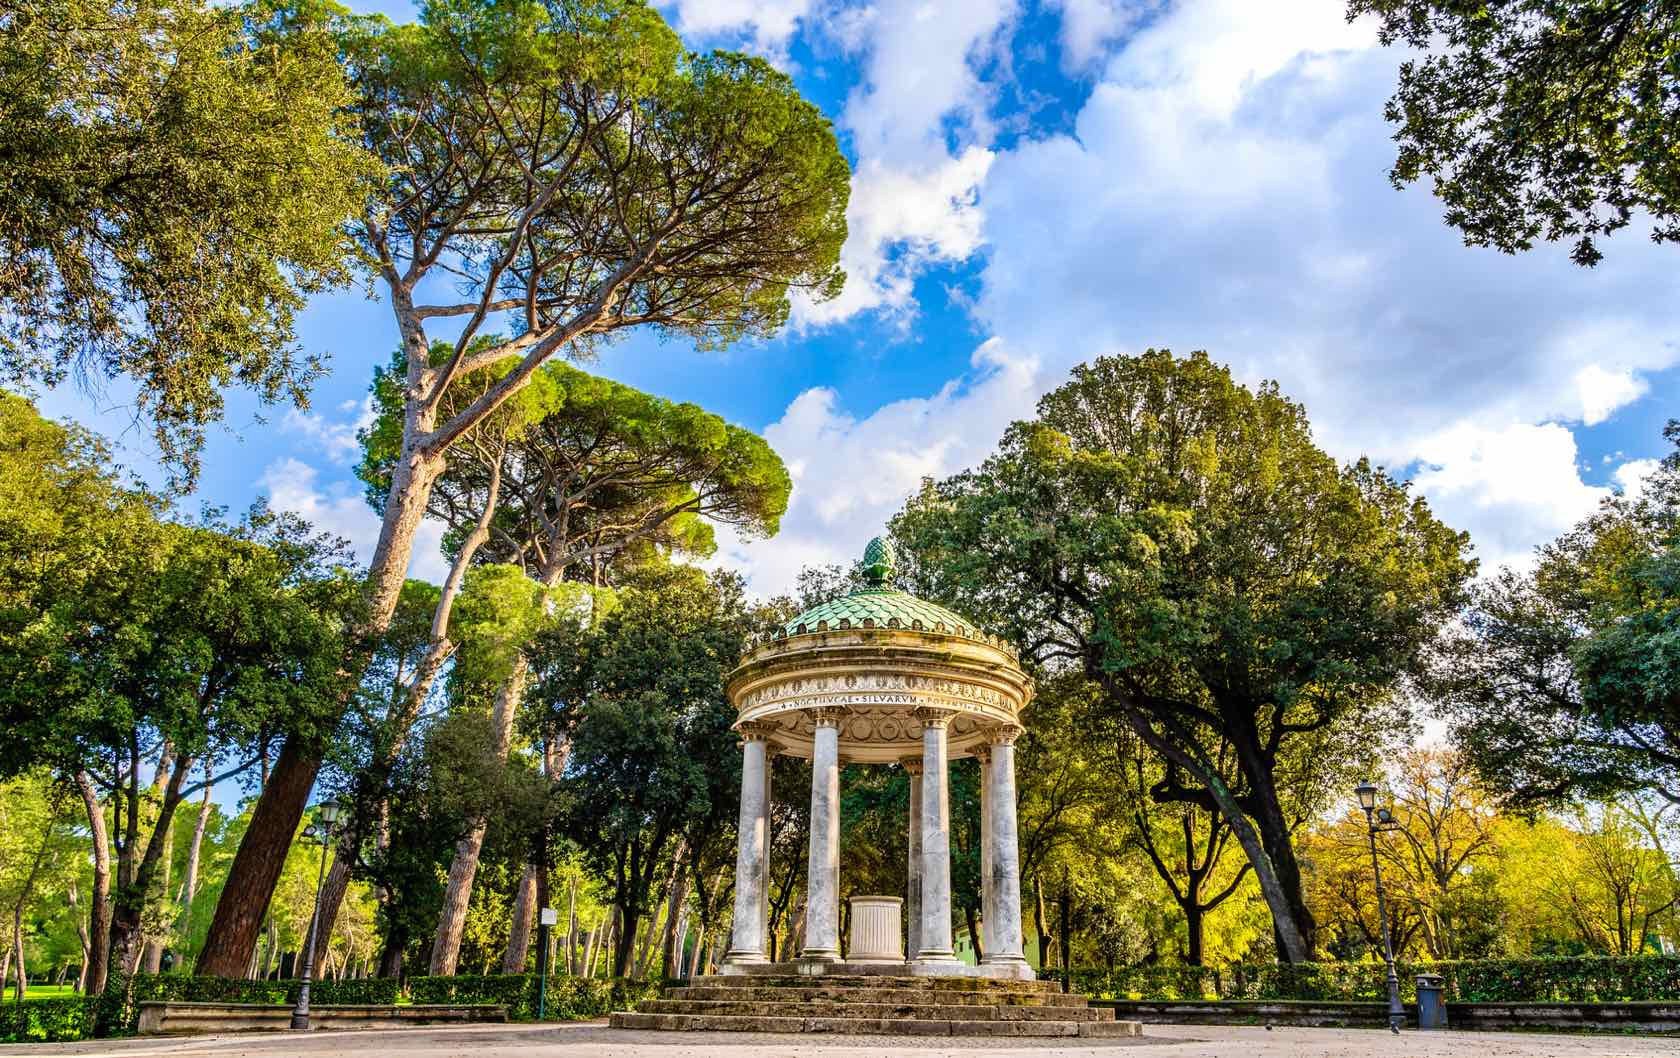 Italy Perfect Expert Shares Rome Sightseeing Tips by Italy Perfect Galleria Borghese